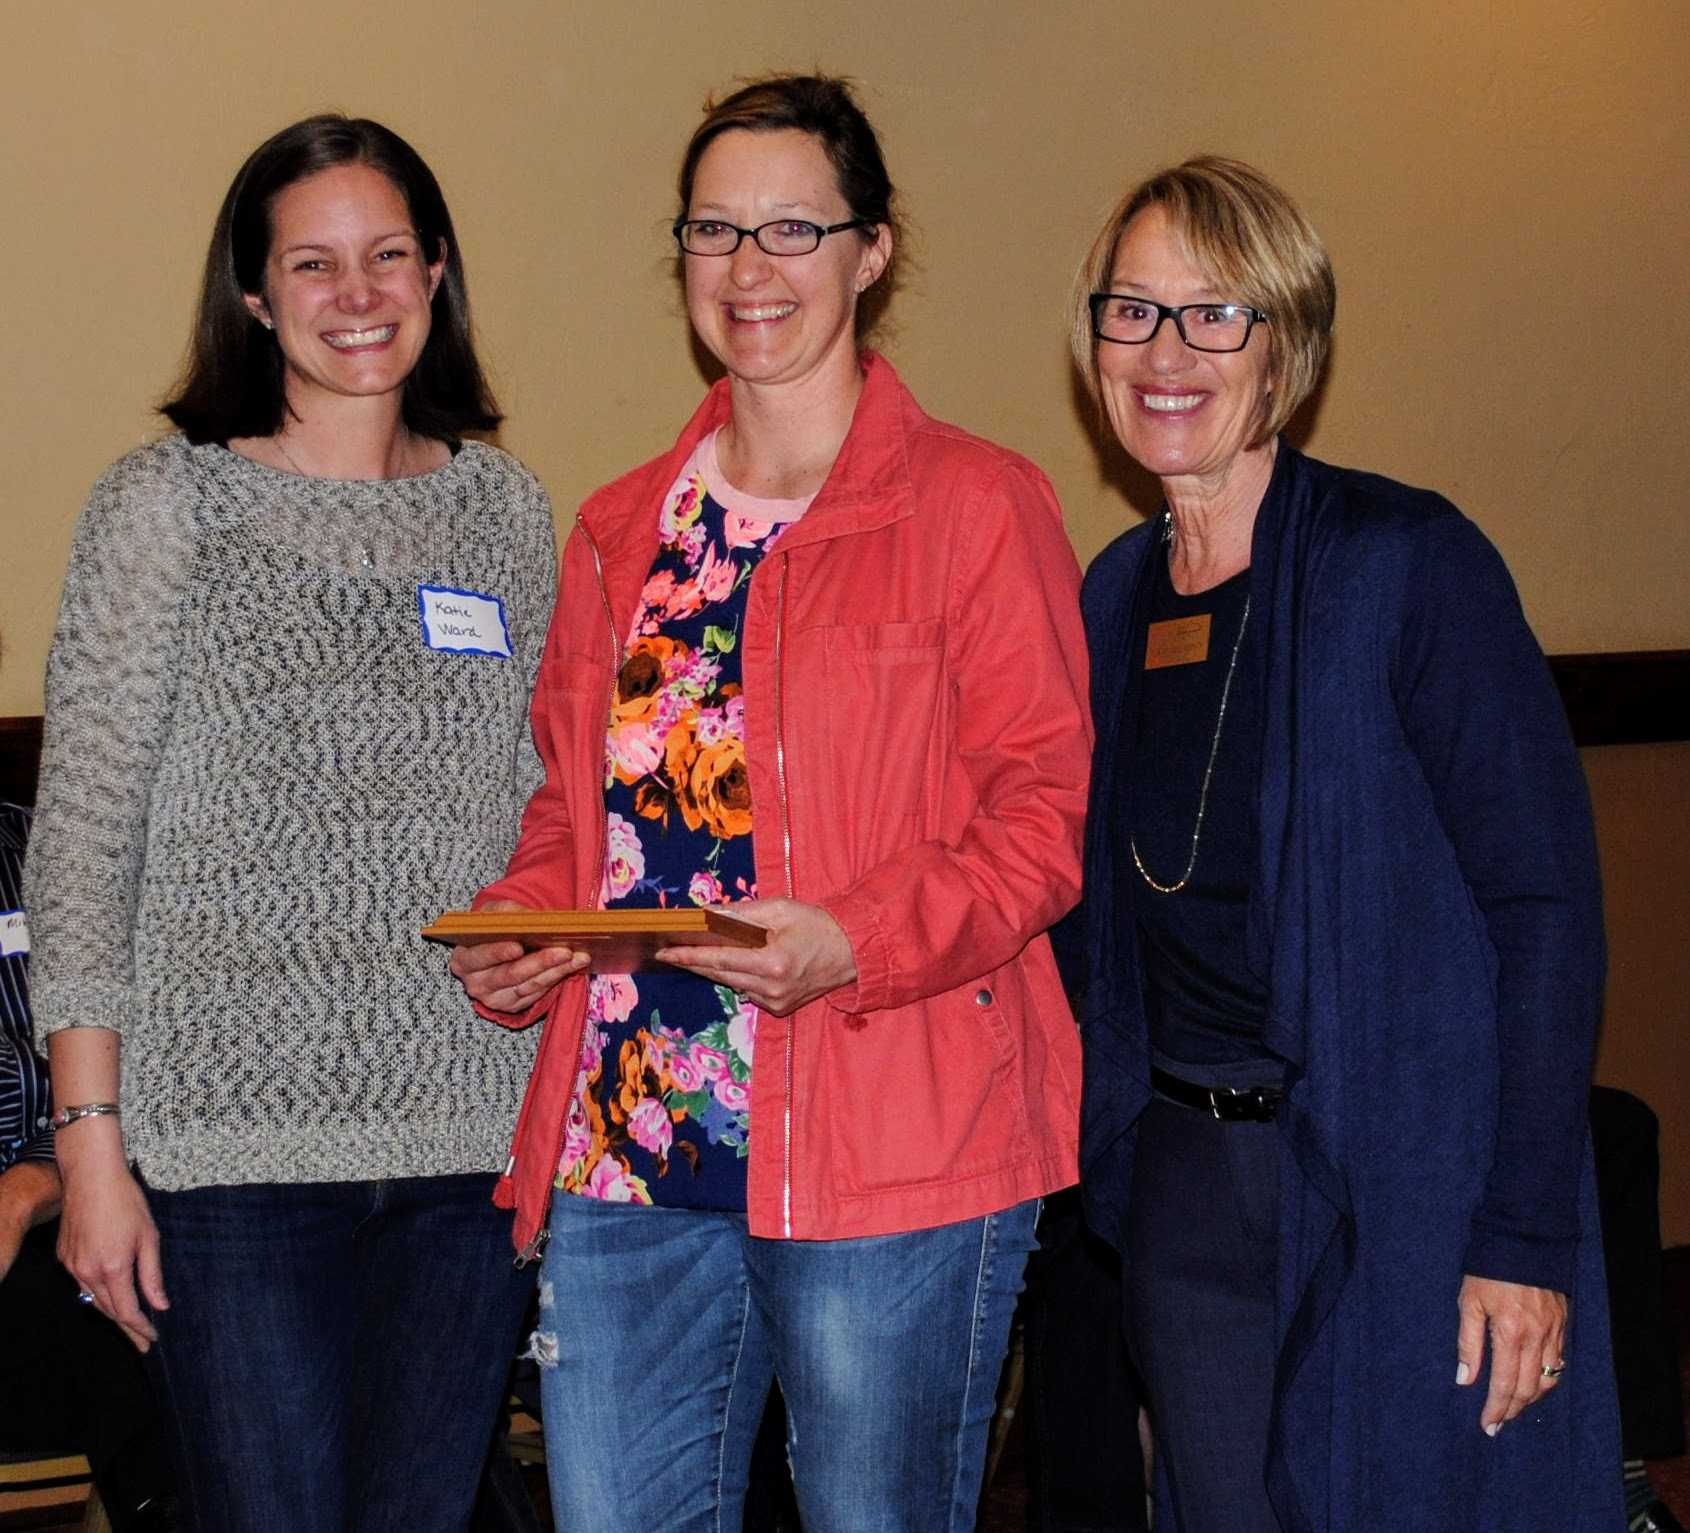 Board Member Linda Maetzold presents the Doris Schumm Community Spirit Award to Katie Ward and Gloria Nelson, representing Project Whitefish Kids.